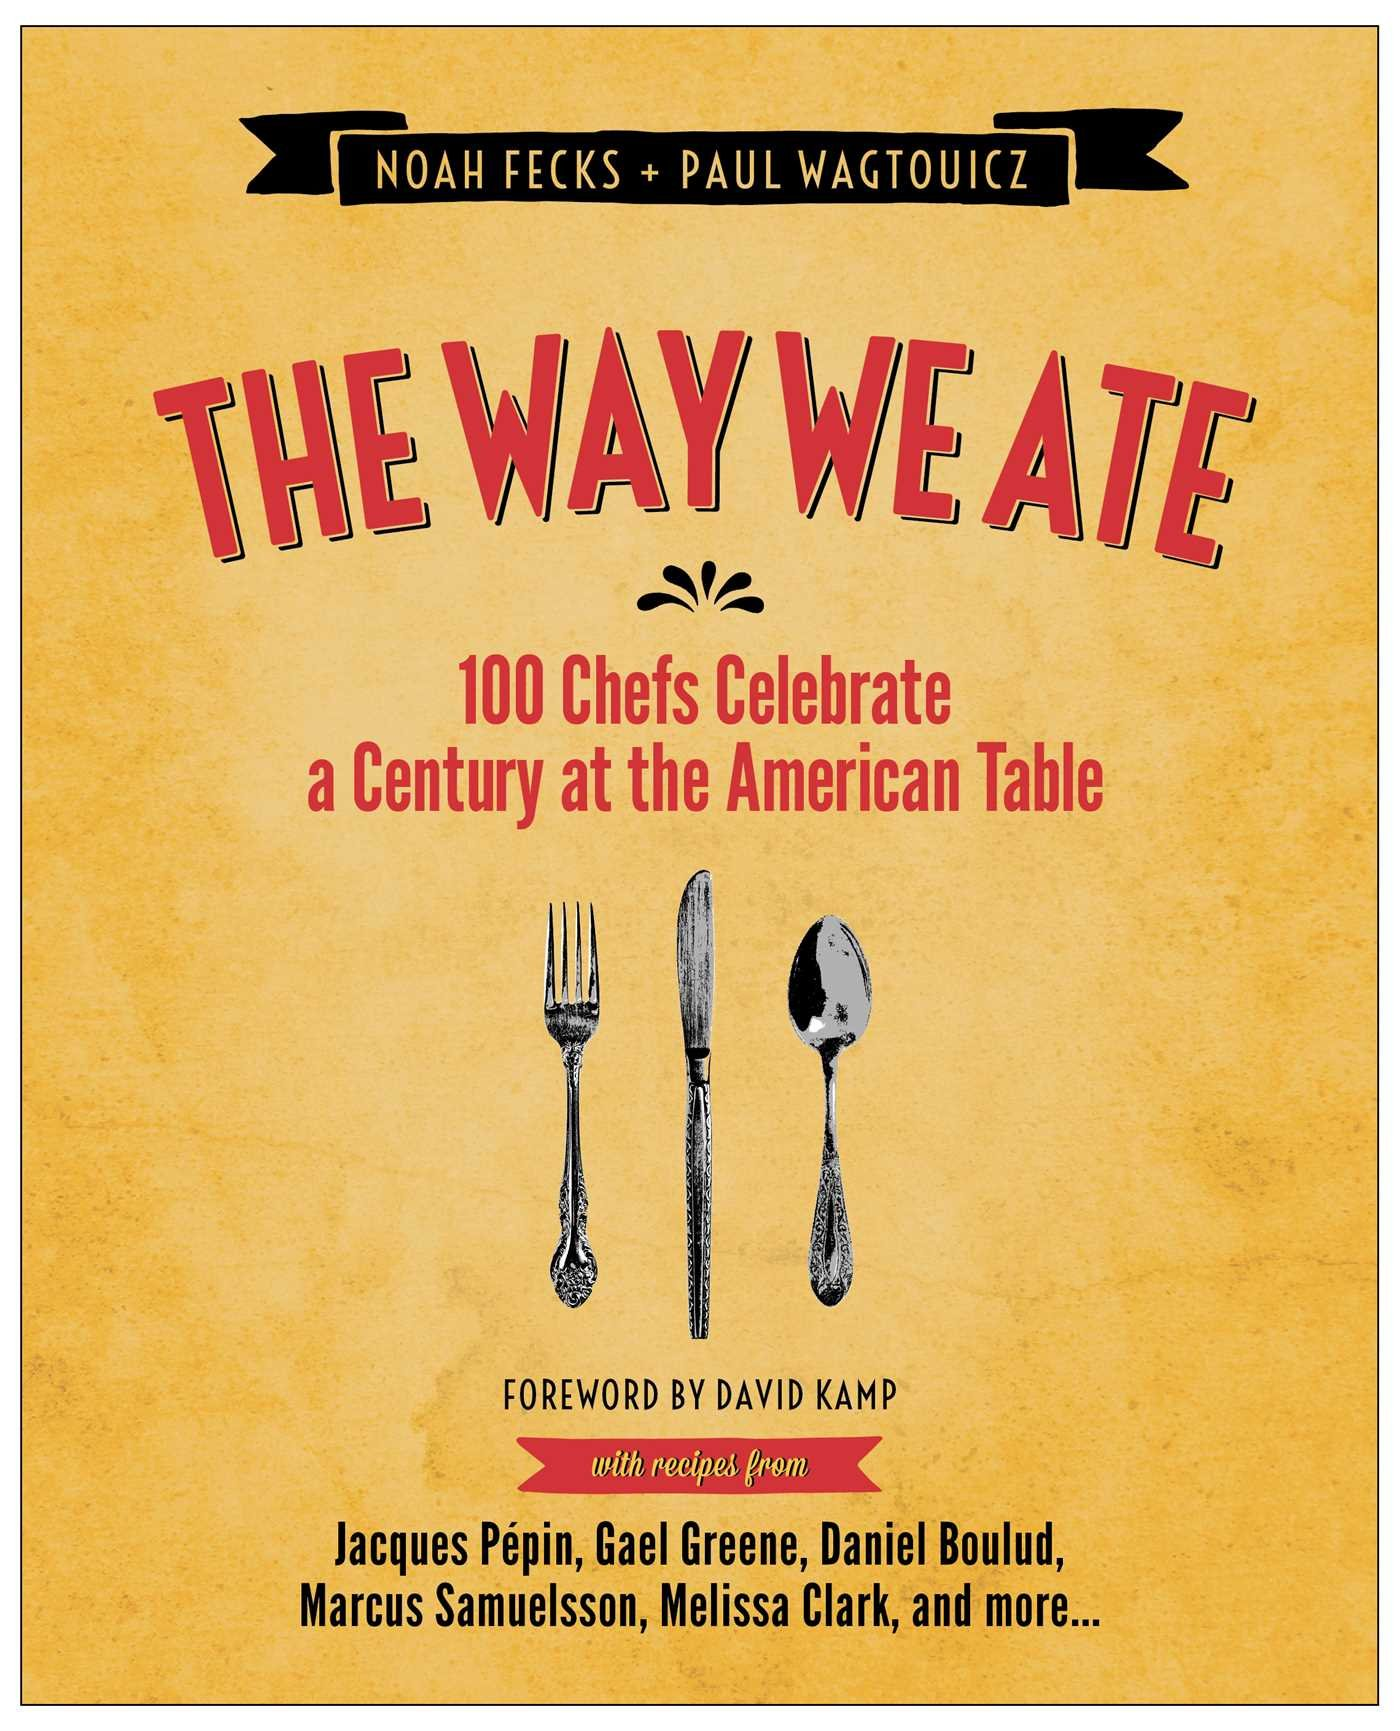 the way we ate chefs celebrate a century at the american  the way we ate 100 chefs celebrate a century at the american table noah fecks paul wagtouicz 9781476732725 com books